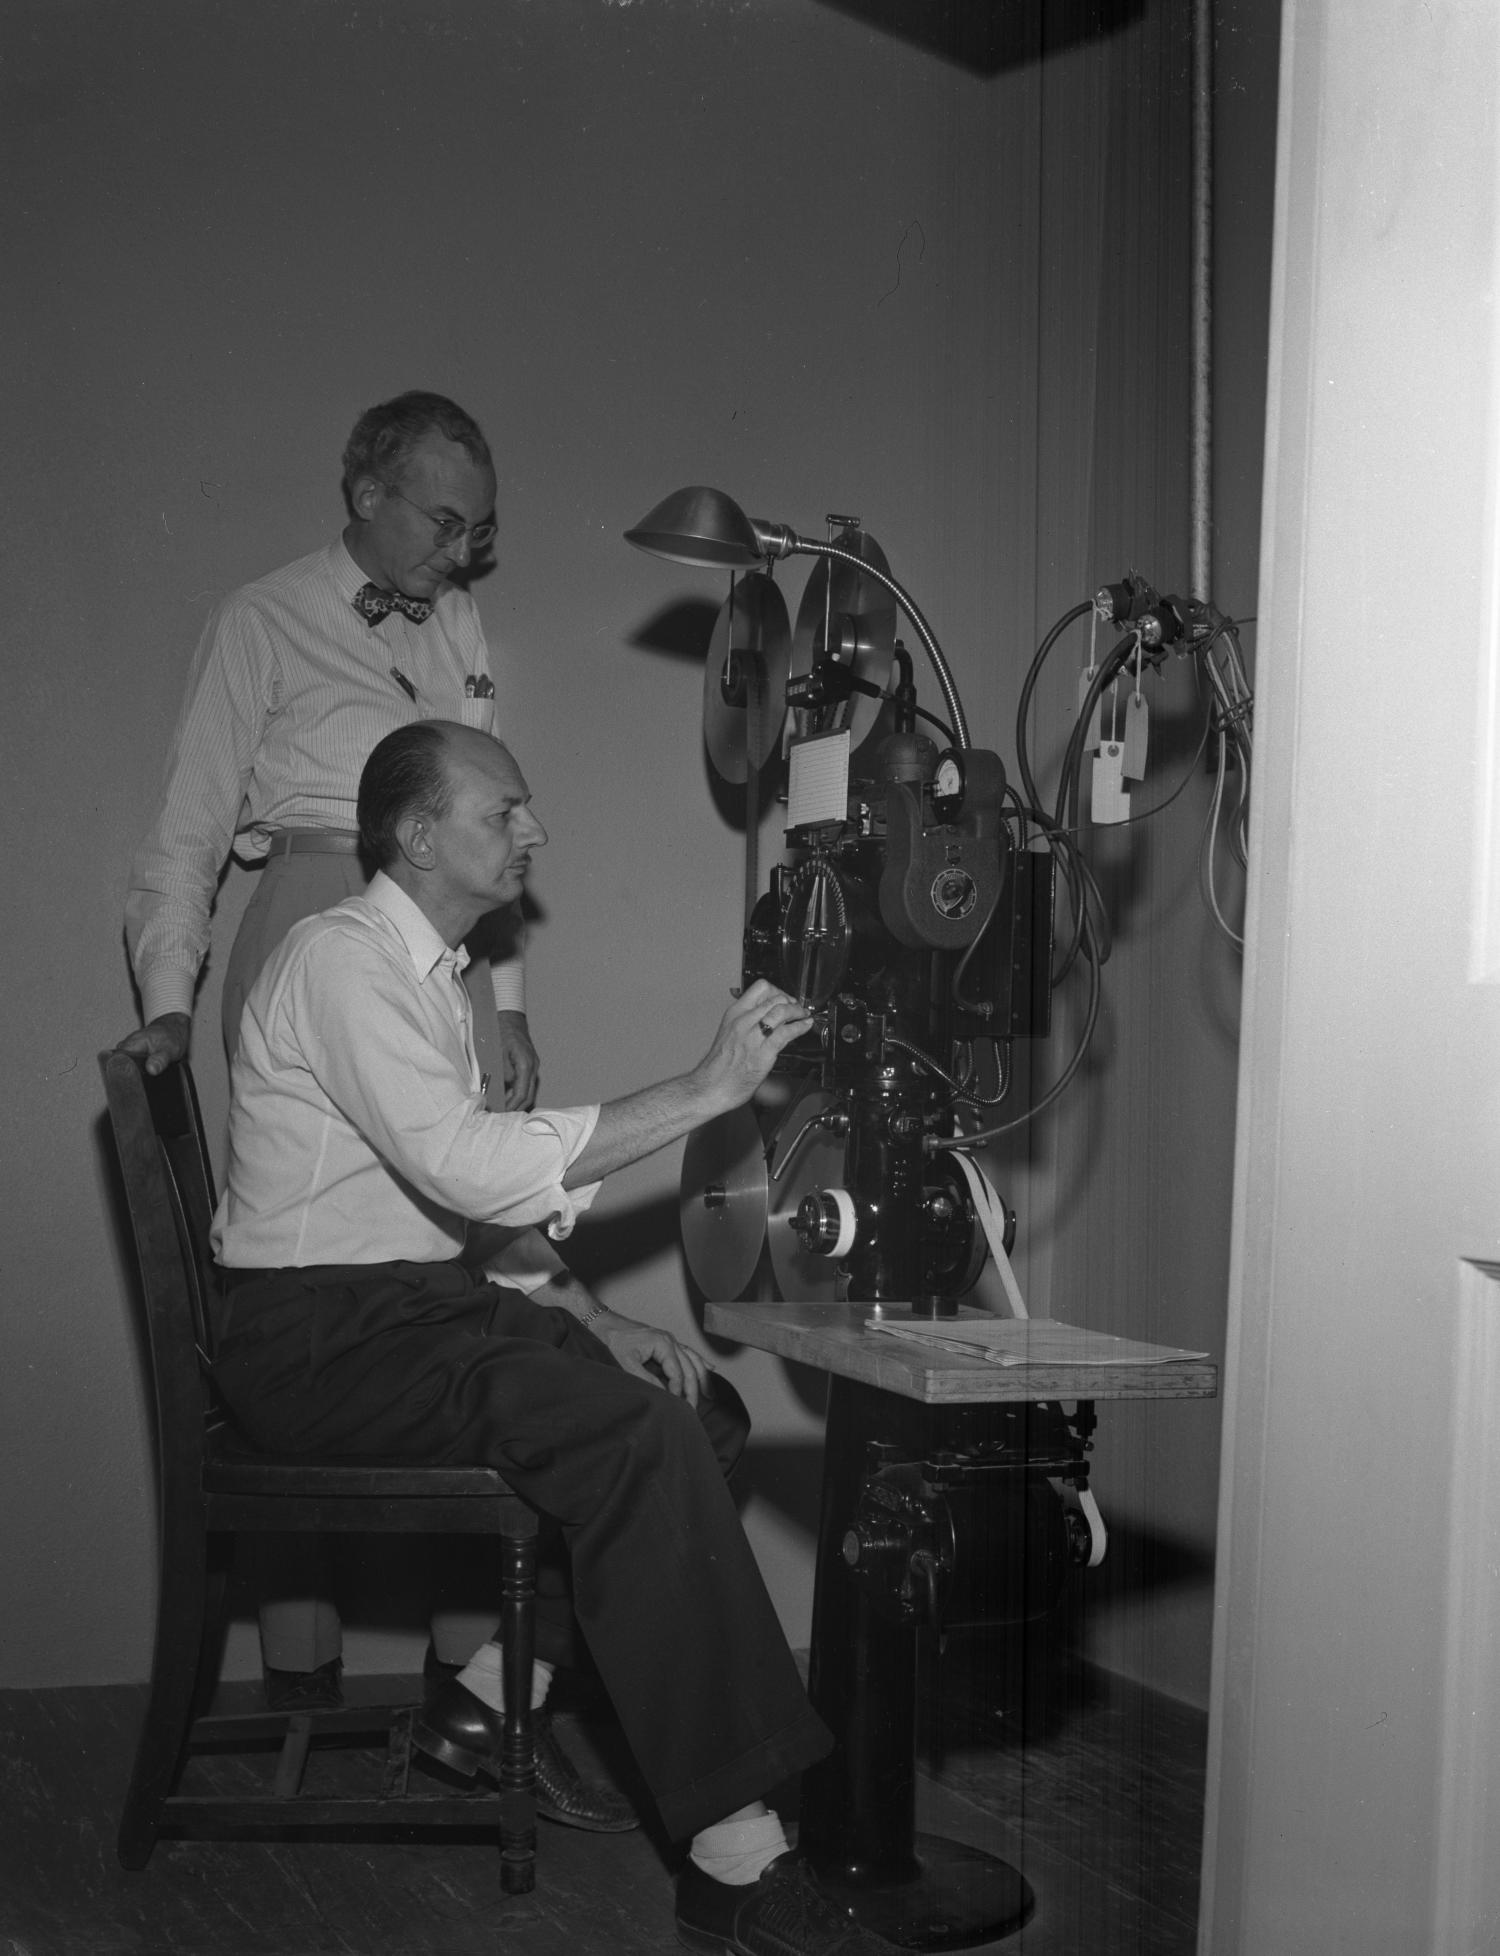 [Film Dept. - McClough and Saunders - Houston Mach and Printer], Photograph of two men examining film equipment.,